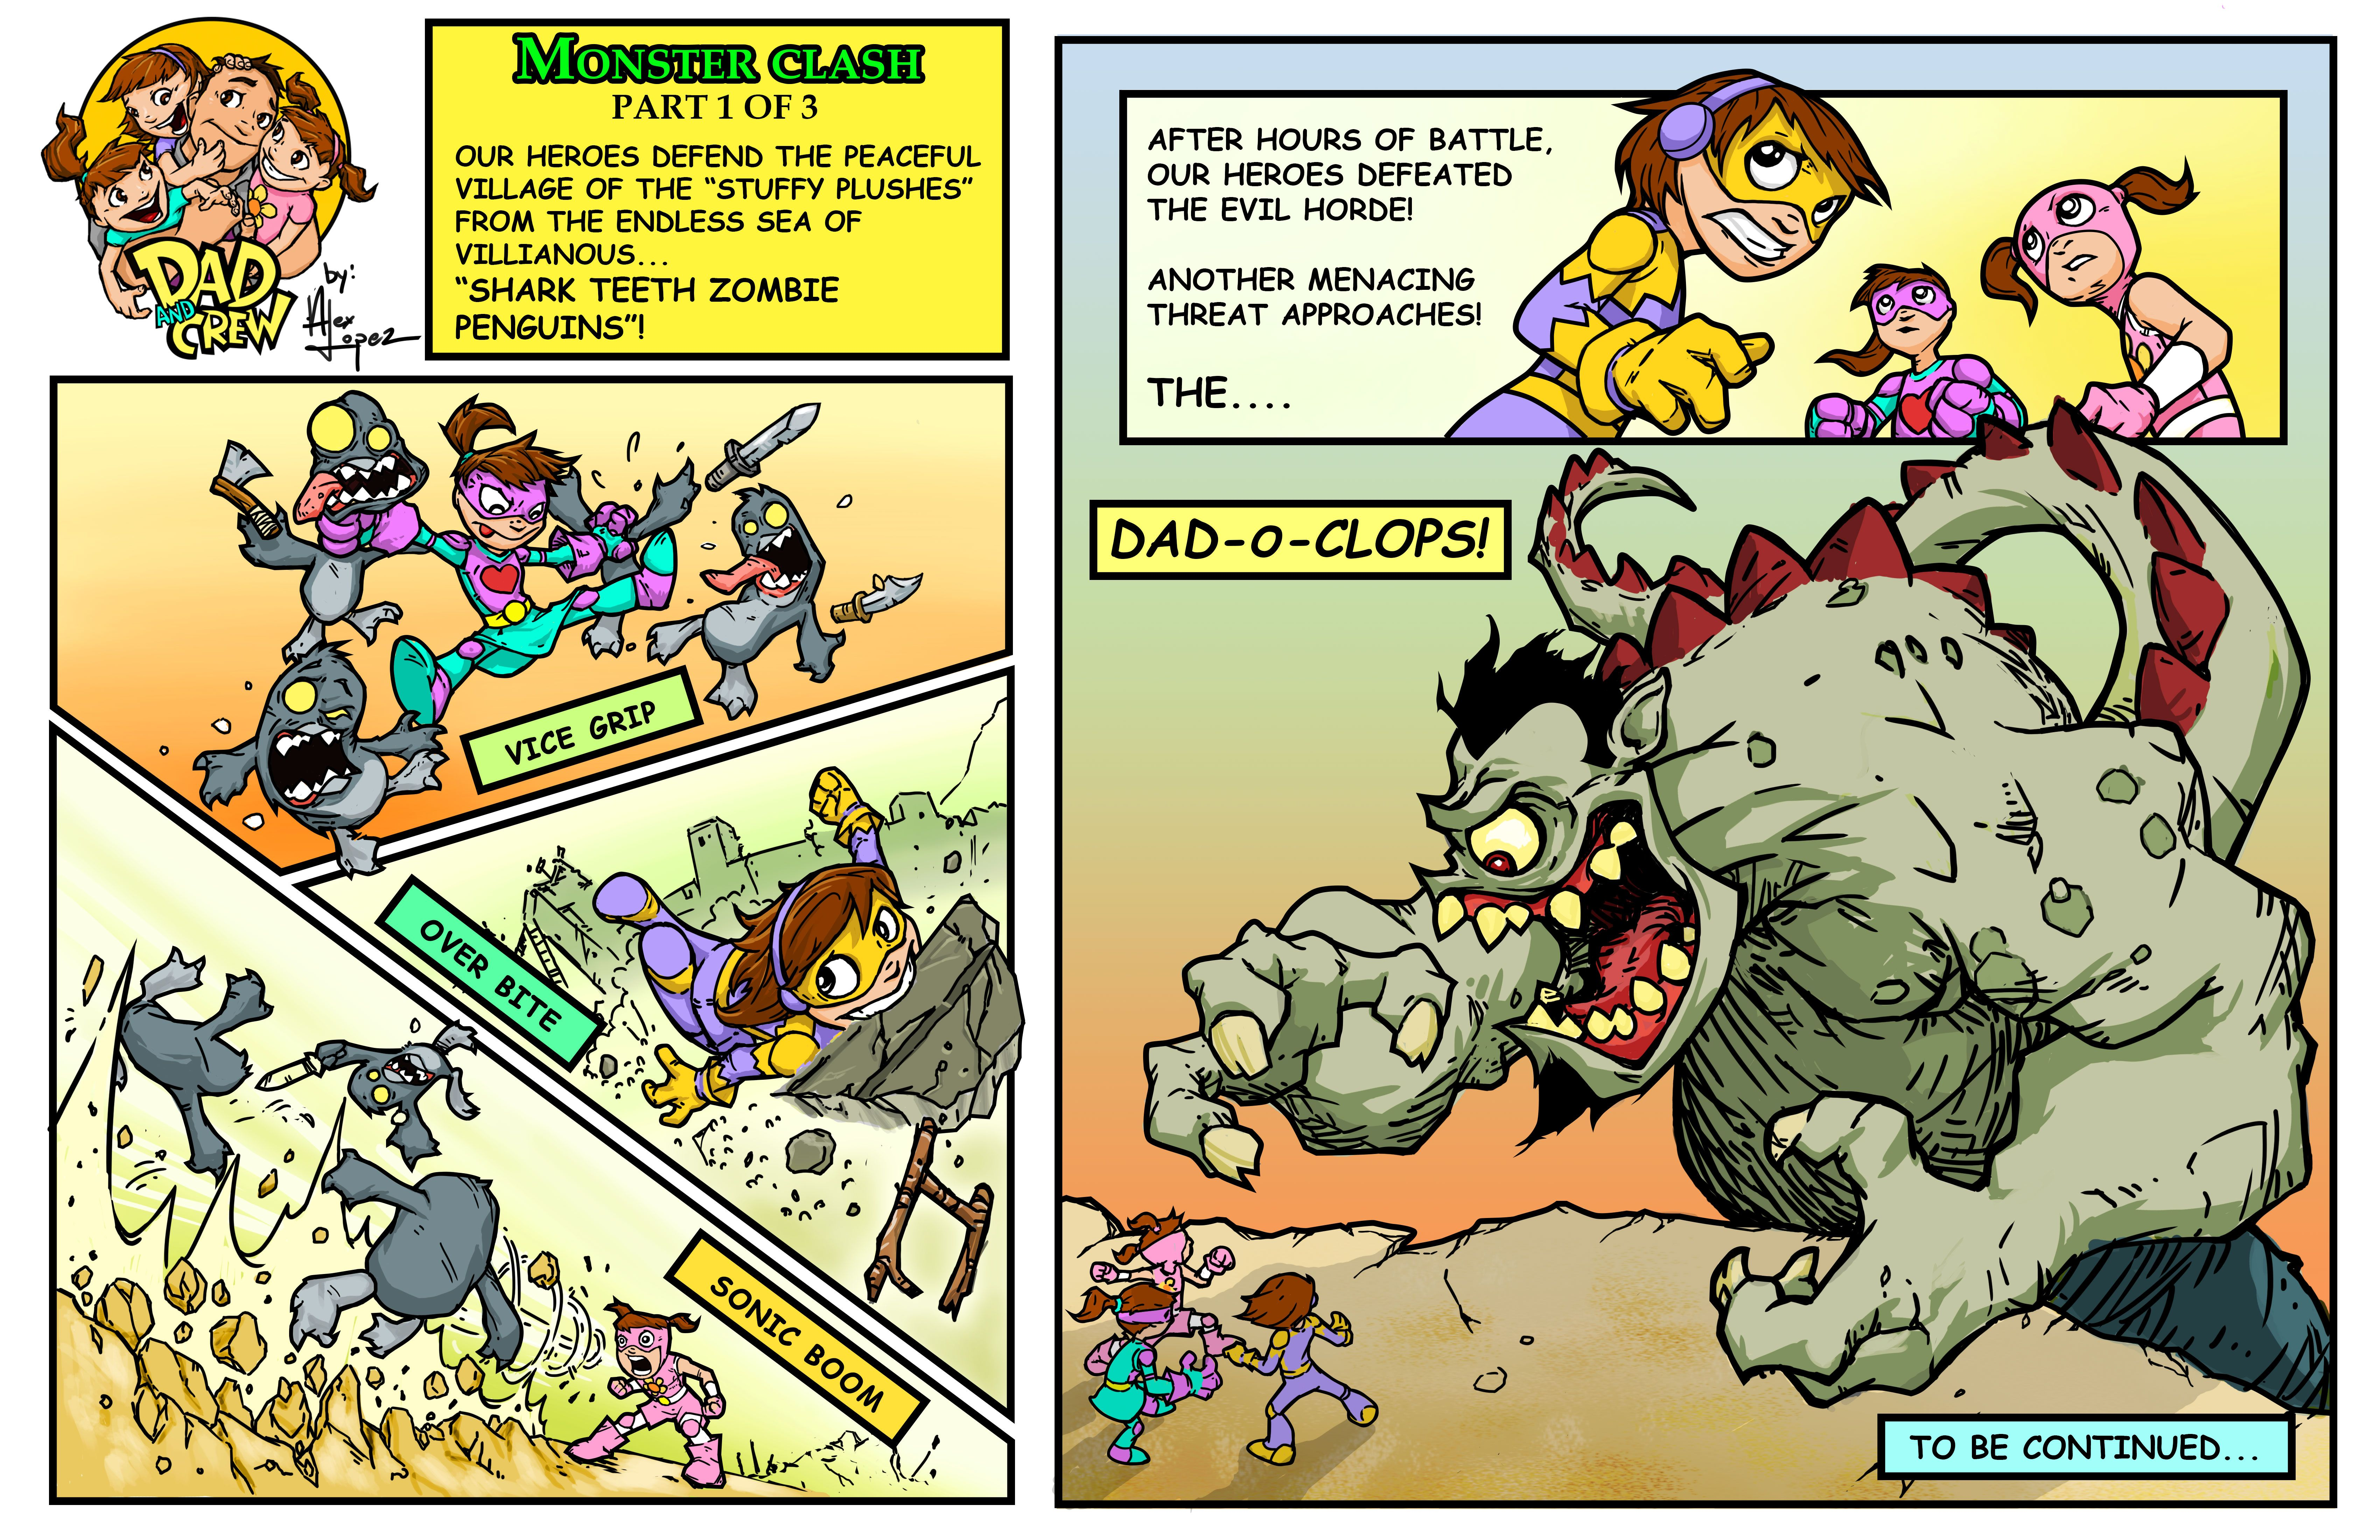 Monsters Bash Part 1of 3